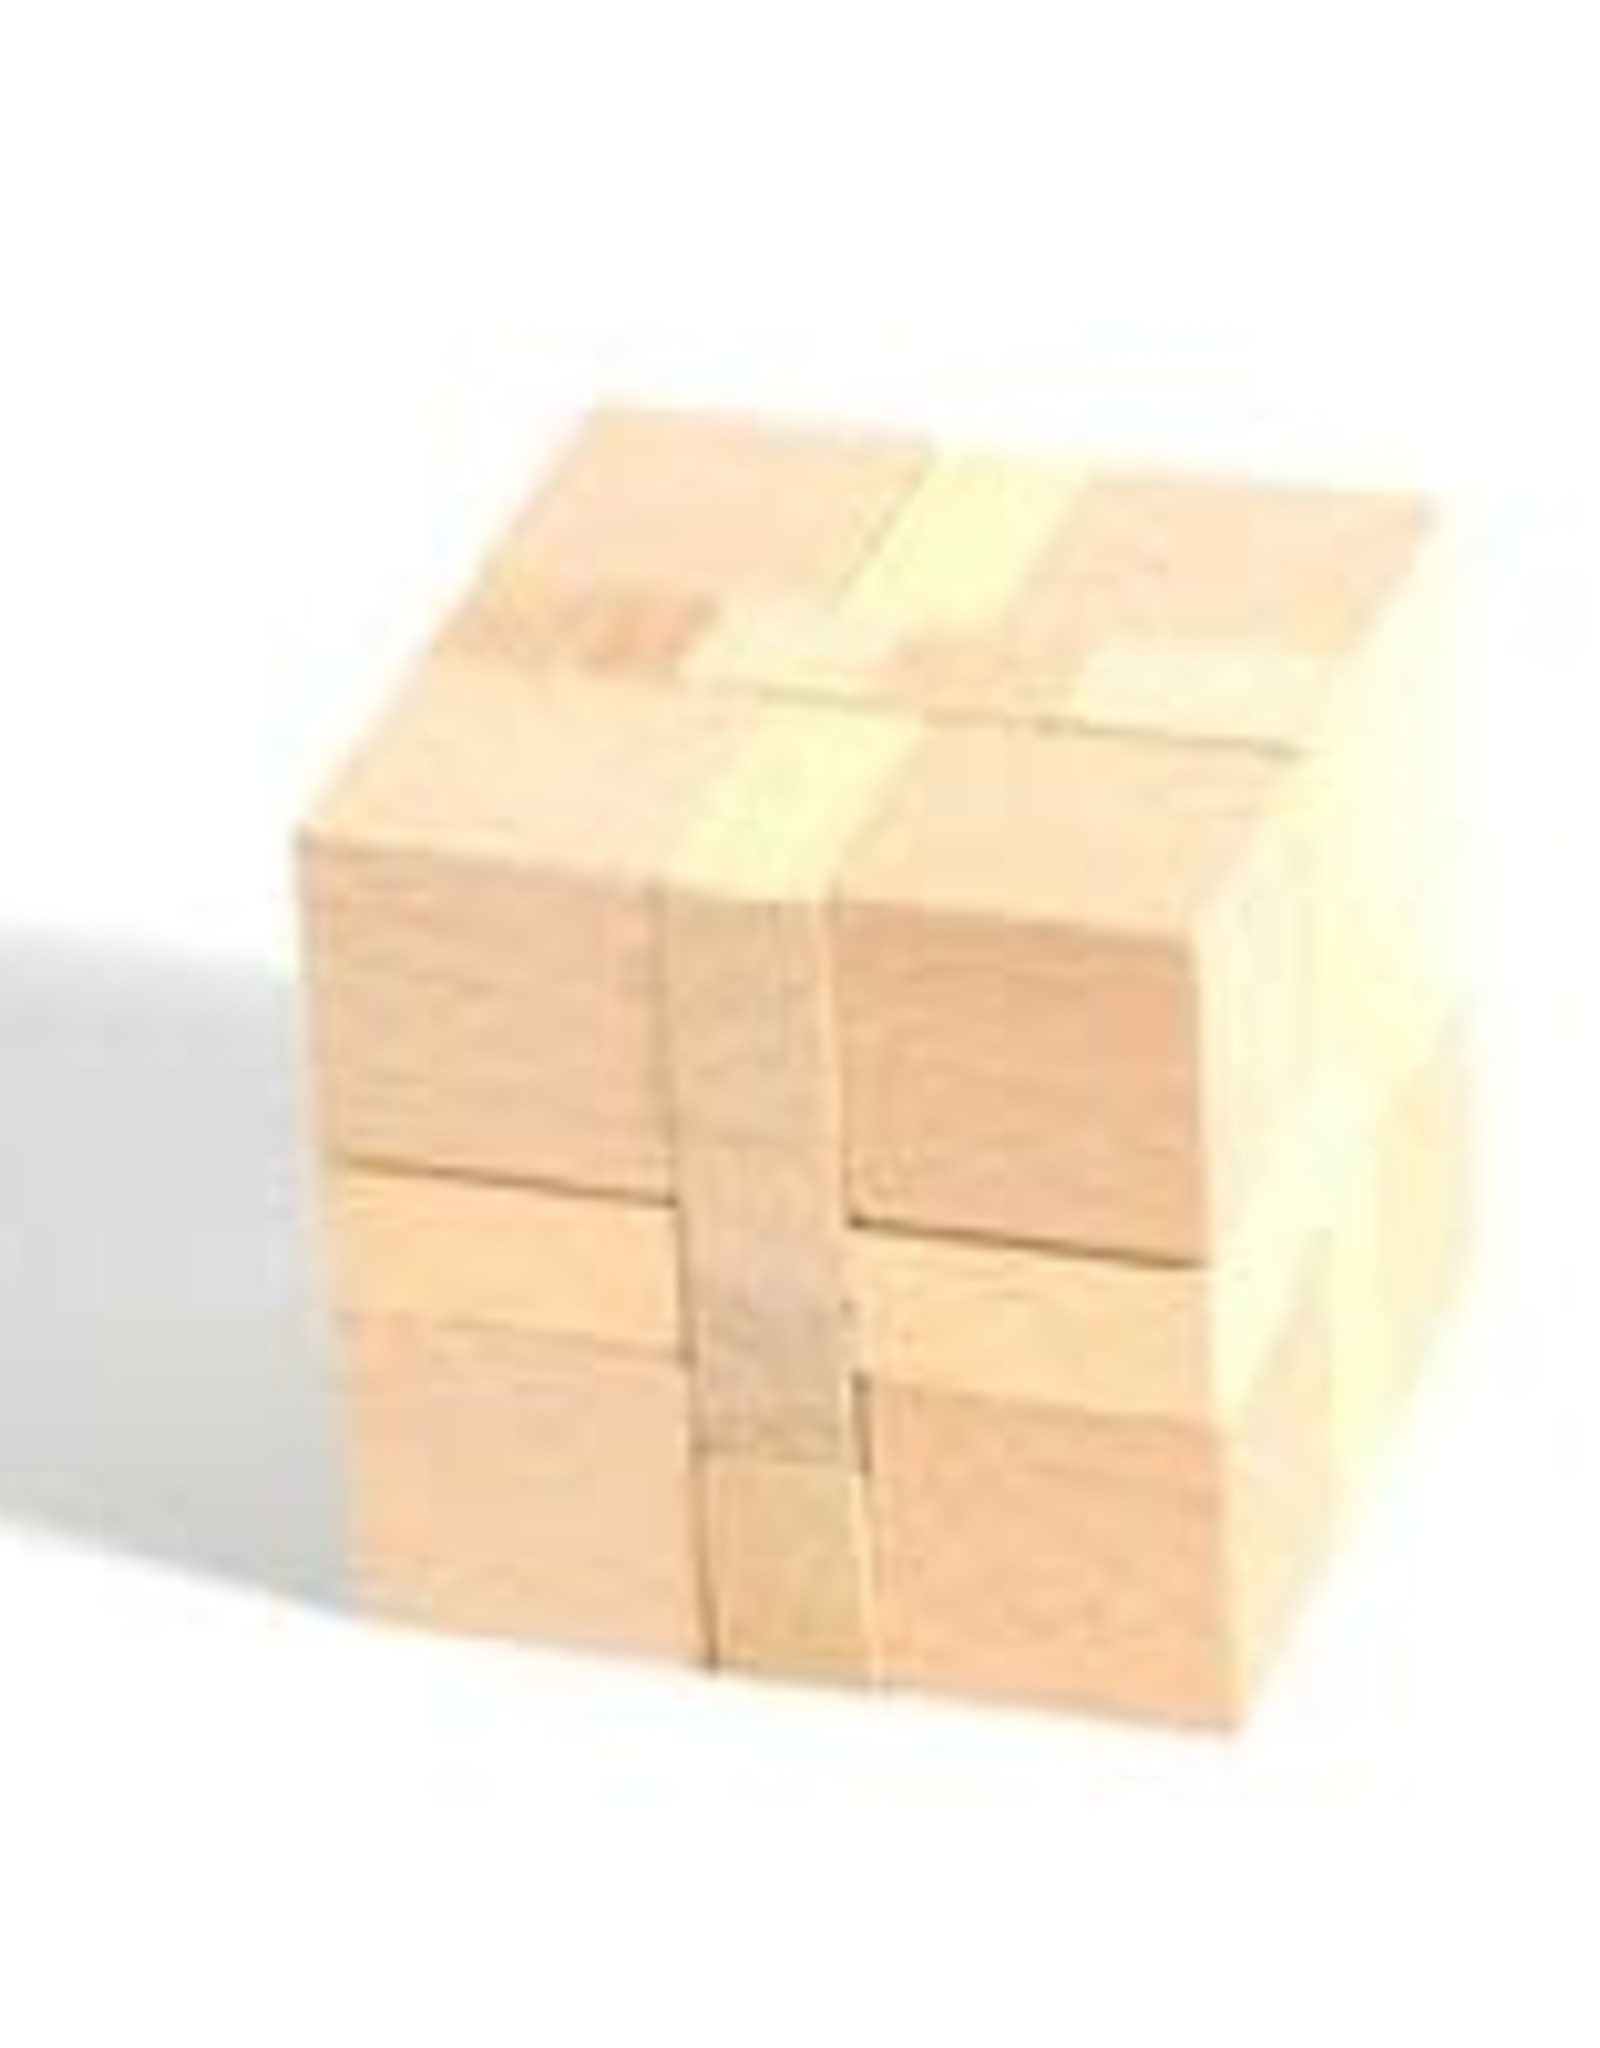 Wooden Puzzle: Cube